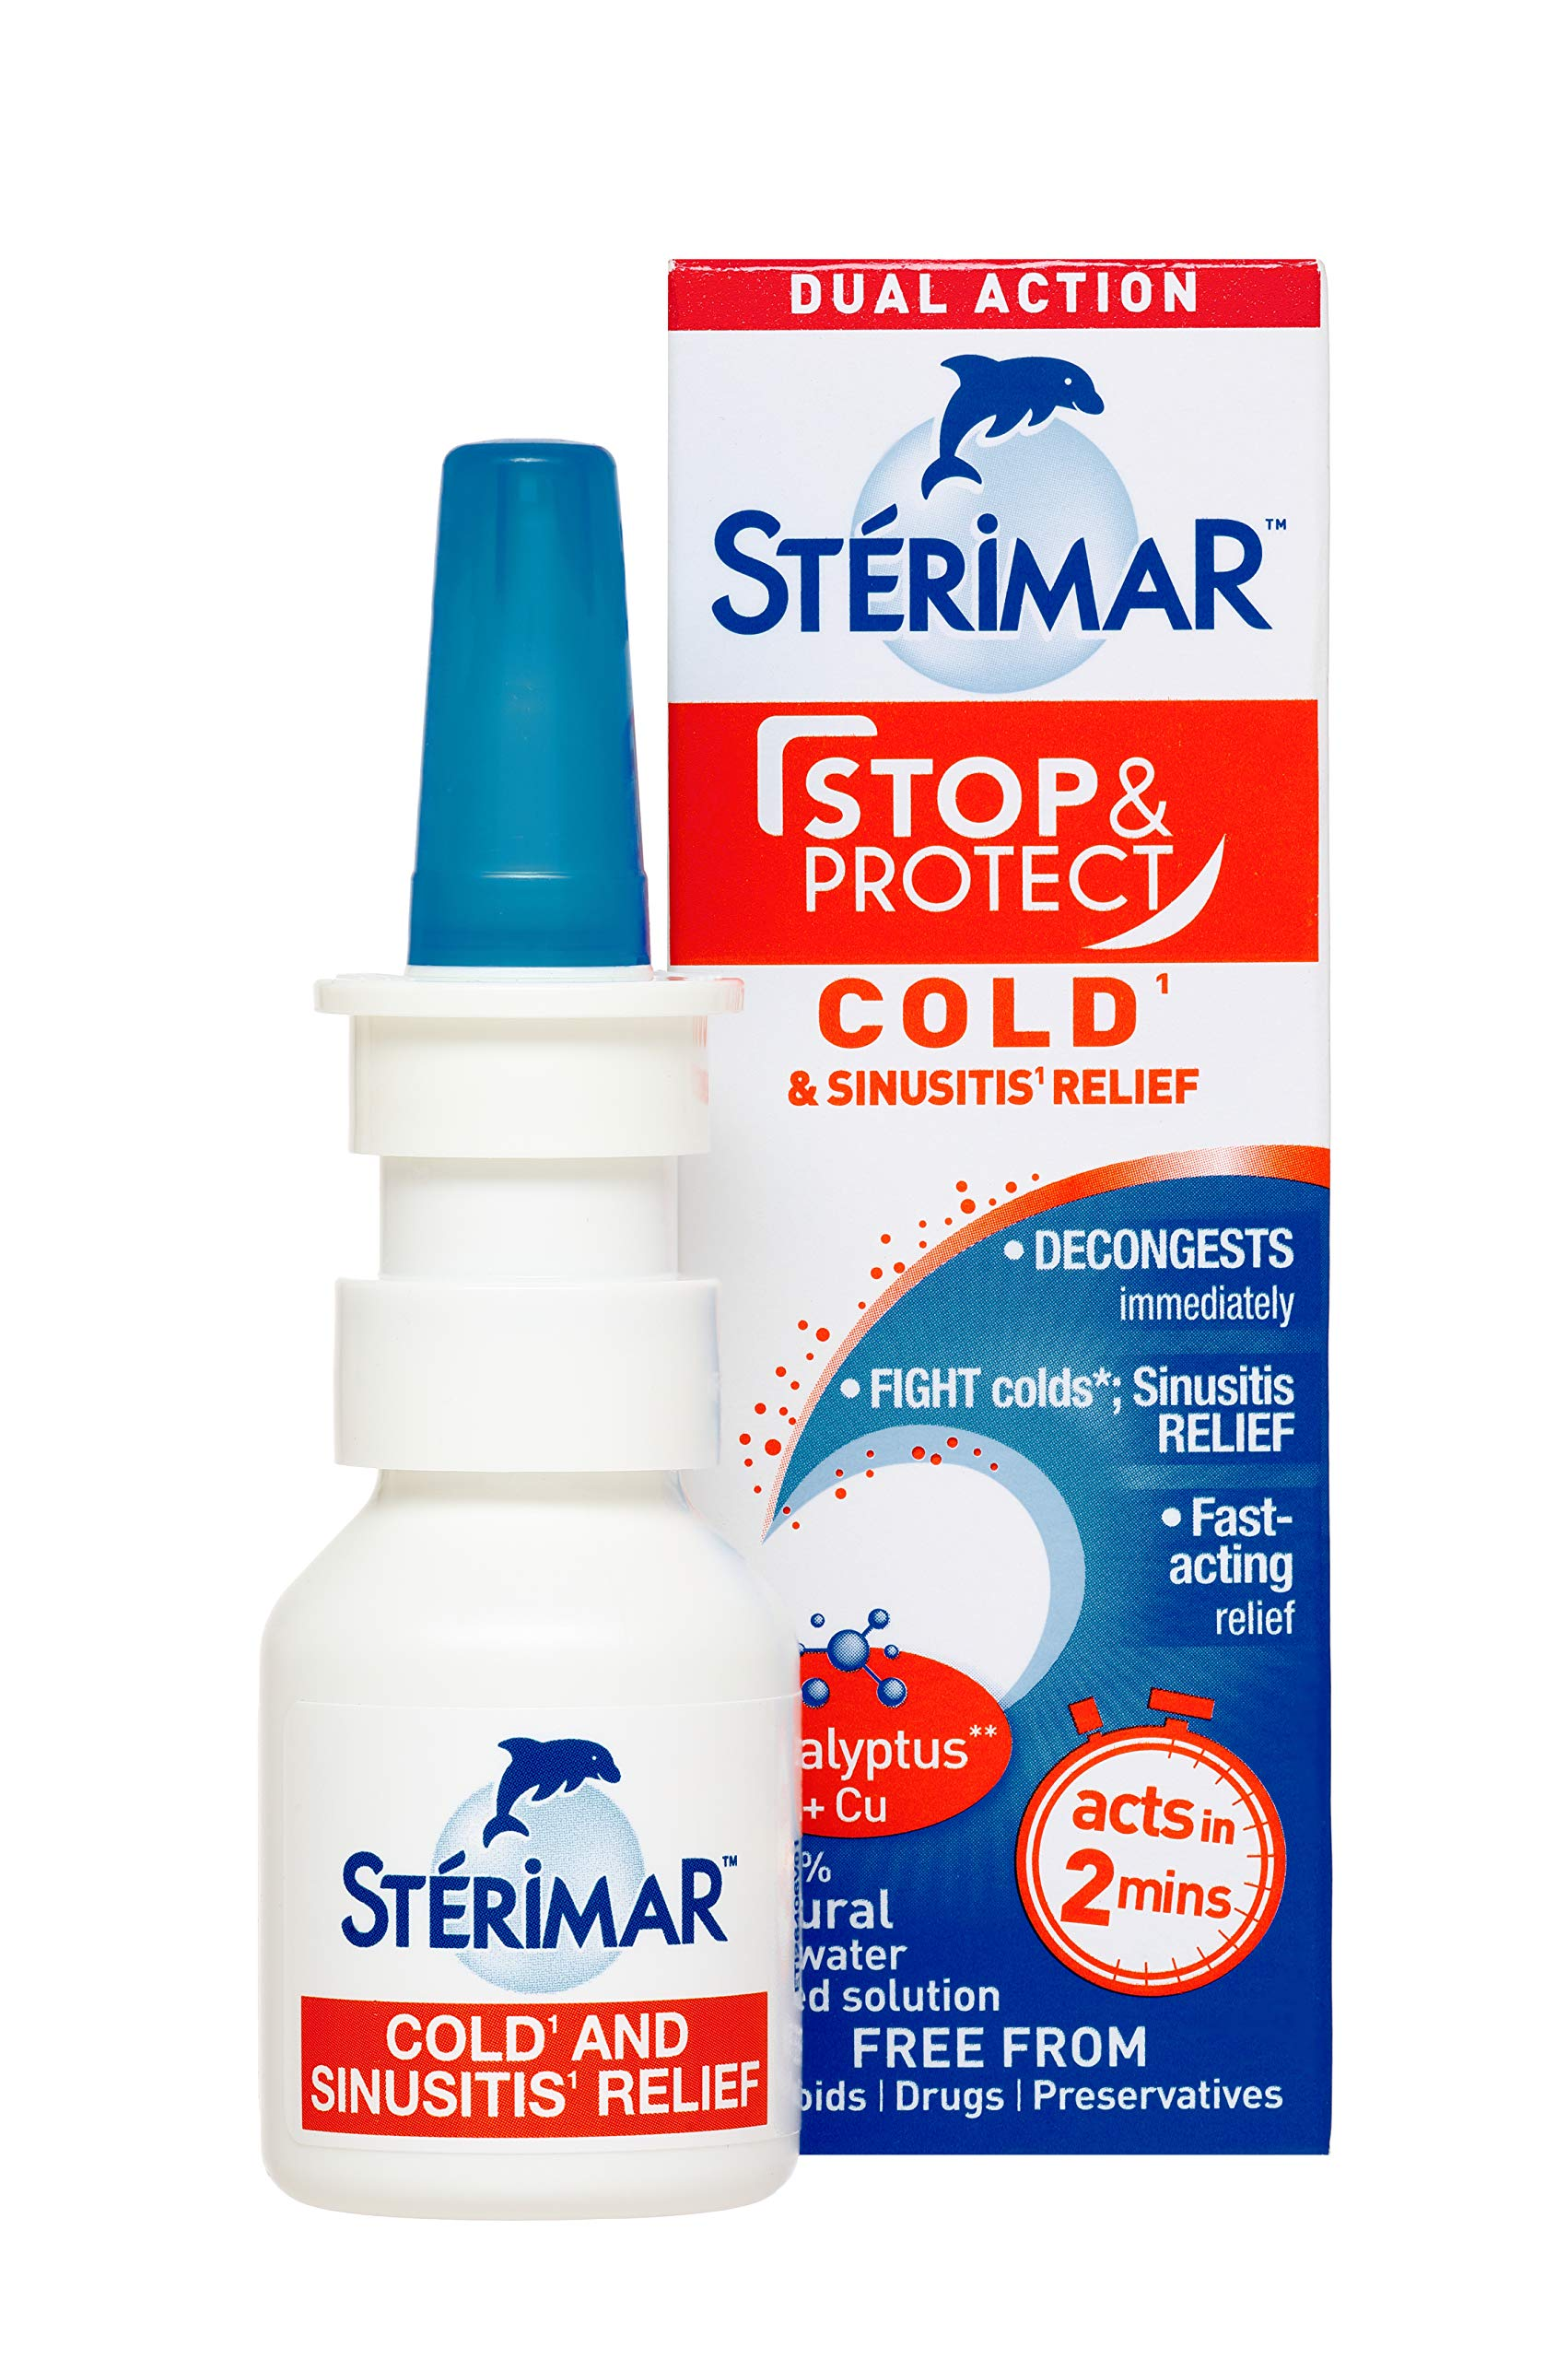 Sterimar Stop & Protect Cold and Sinus Relief- 100% Natural Sea Water Based Nasal Spray with Added Copper and Eucalyptus - 20 ml Can